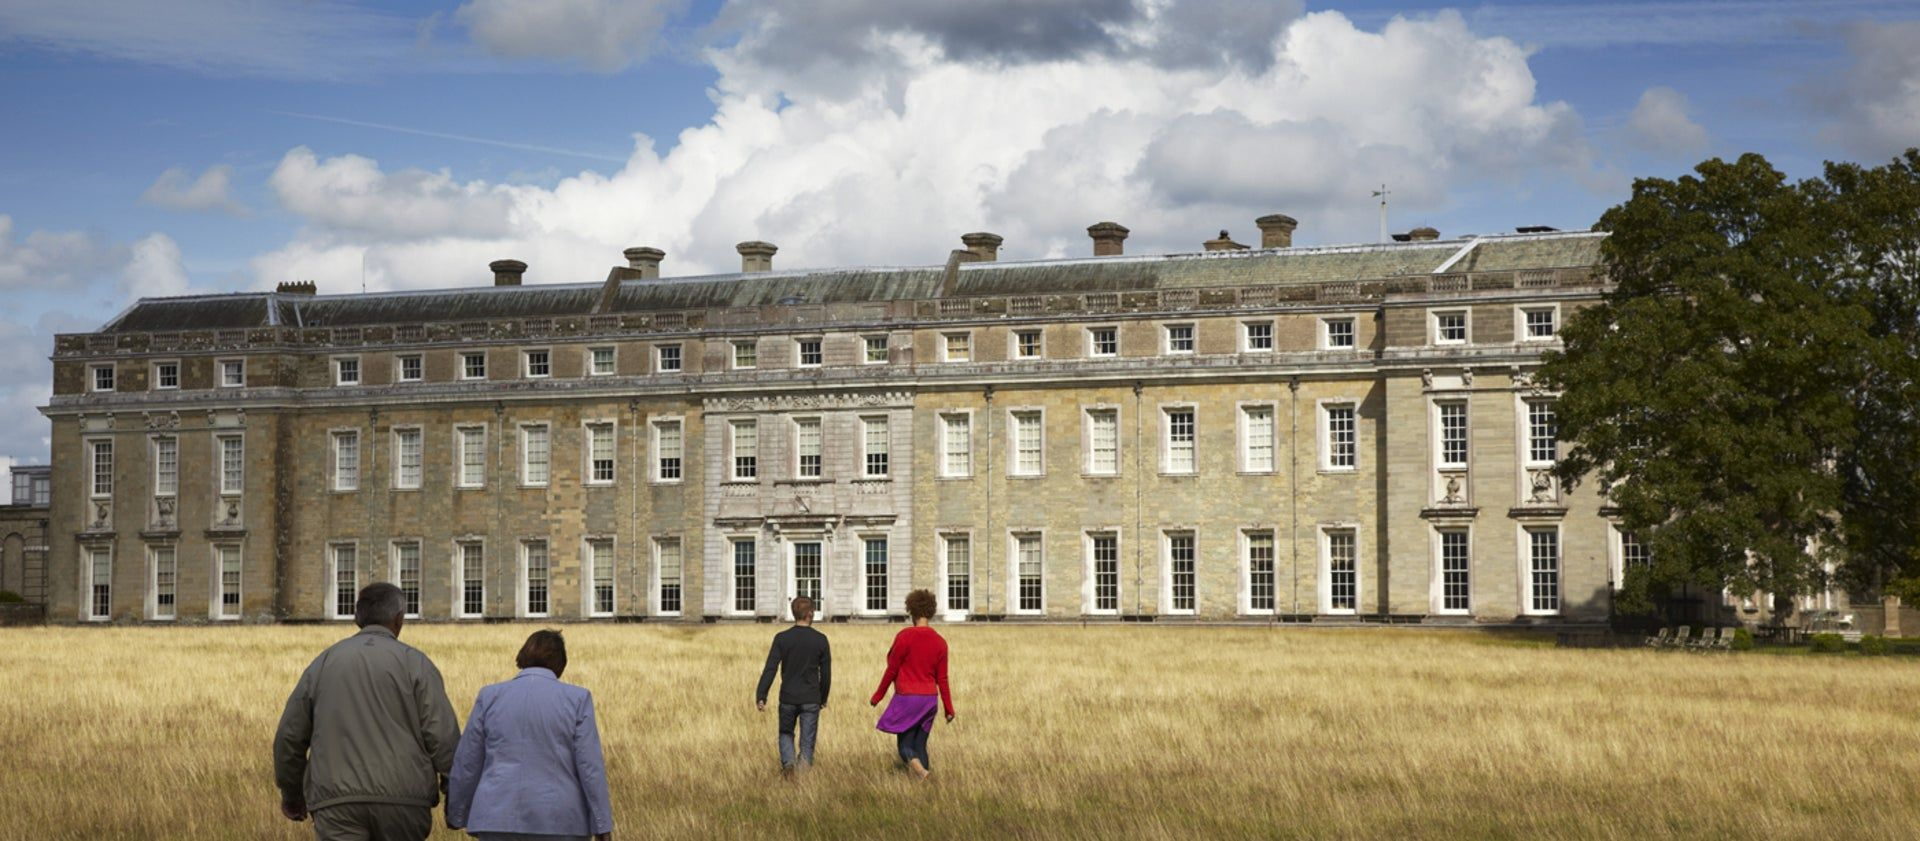 The west front of Petworth House in West Sussex, England, which is owned by the National Trust © National Trust